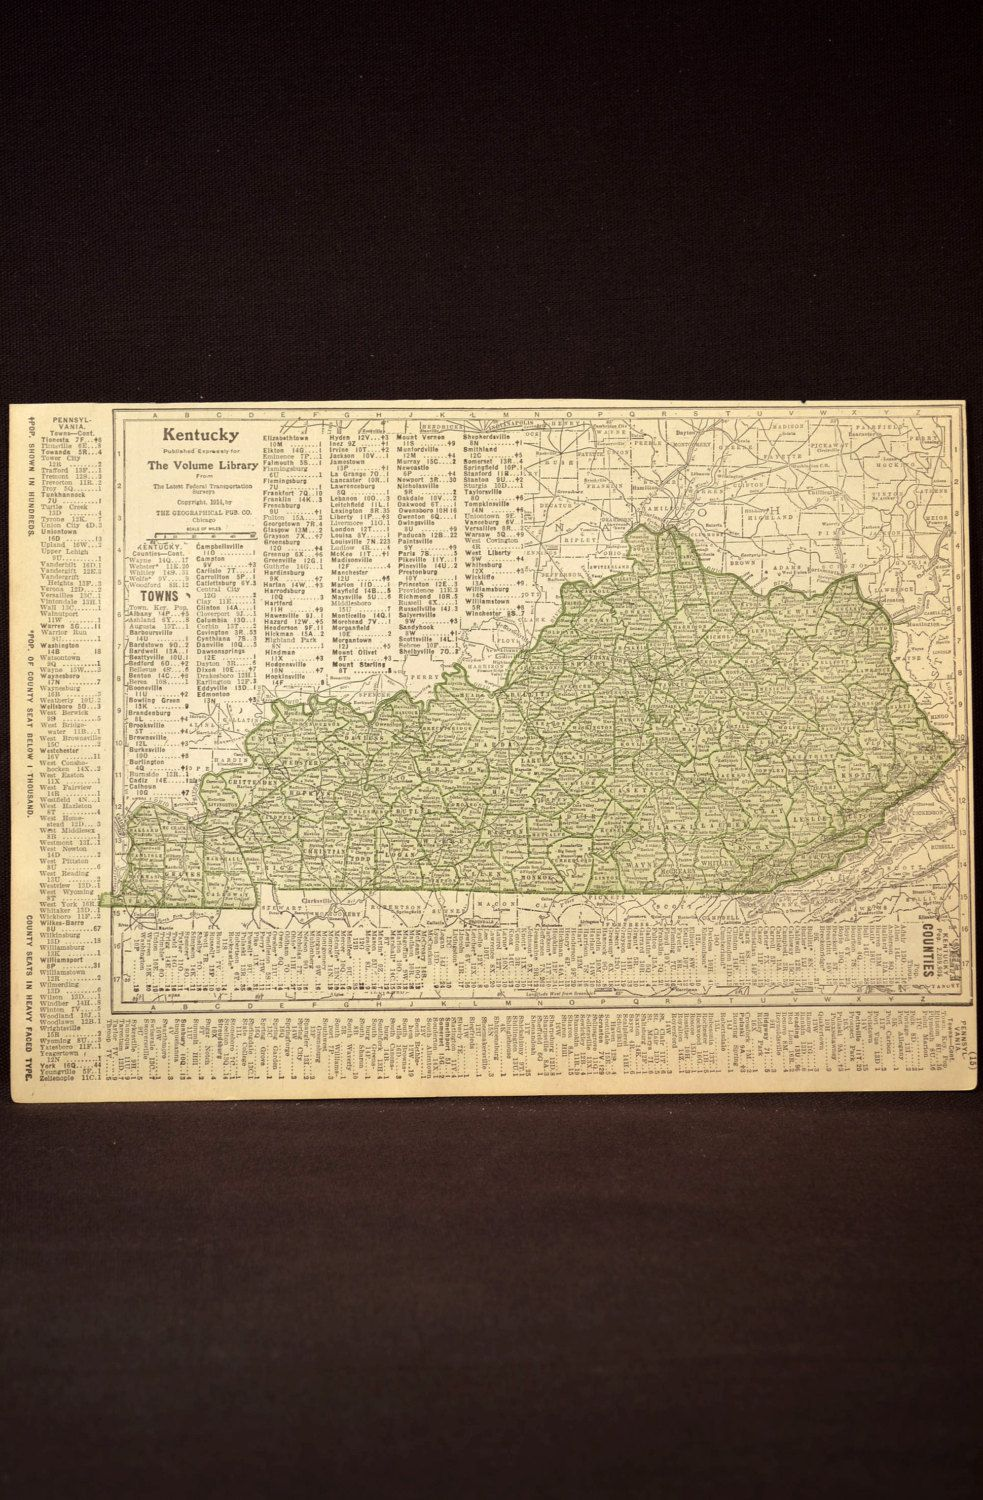 Kentucky Map Kentucky Antique Original Green 1914 Wall Decor by ...